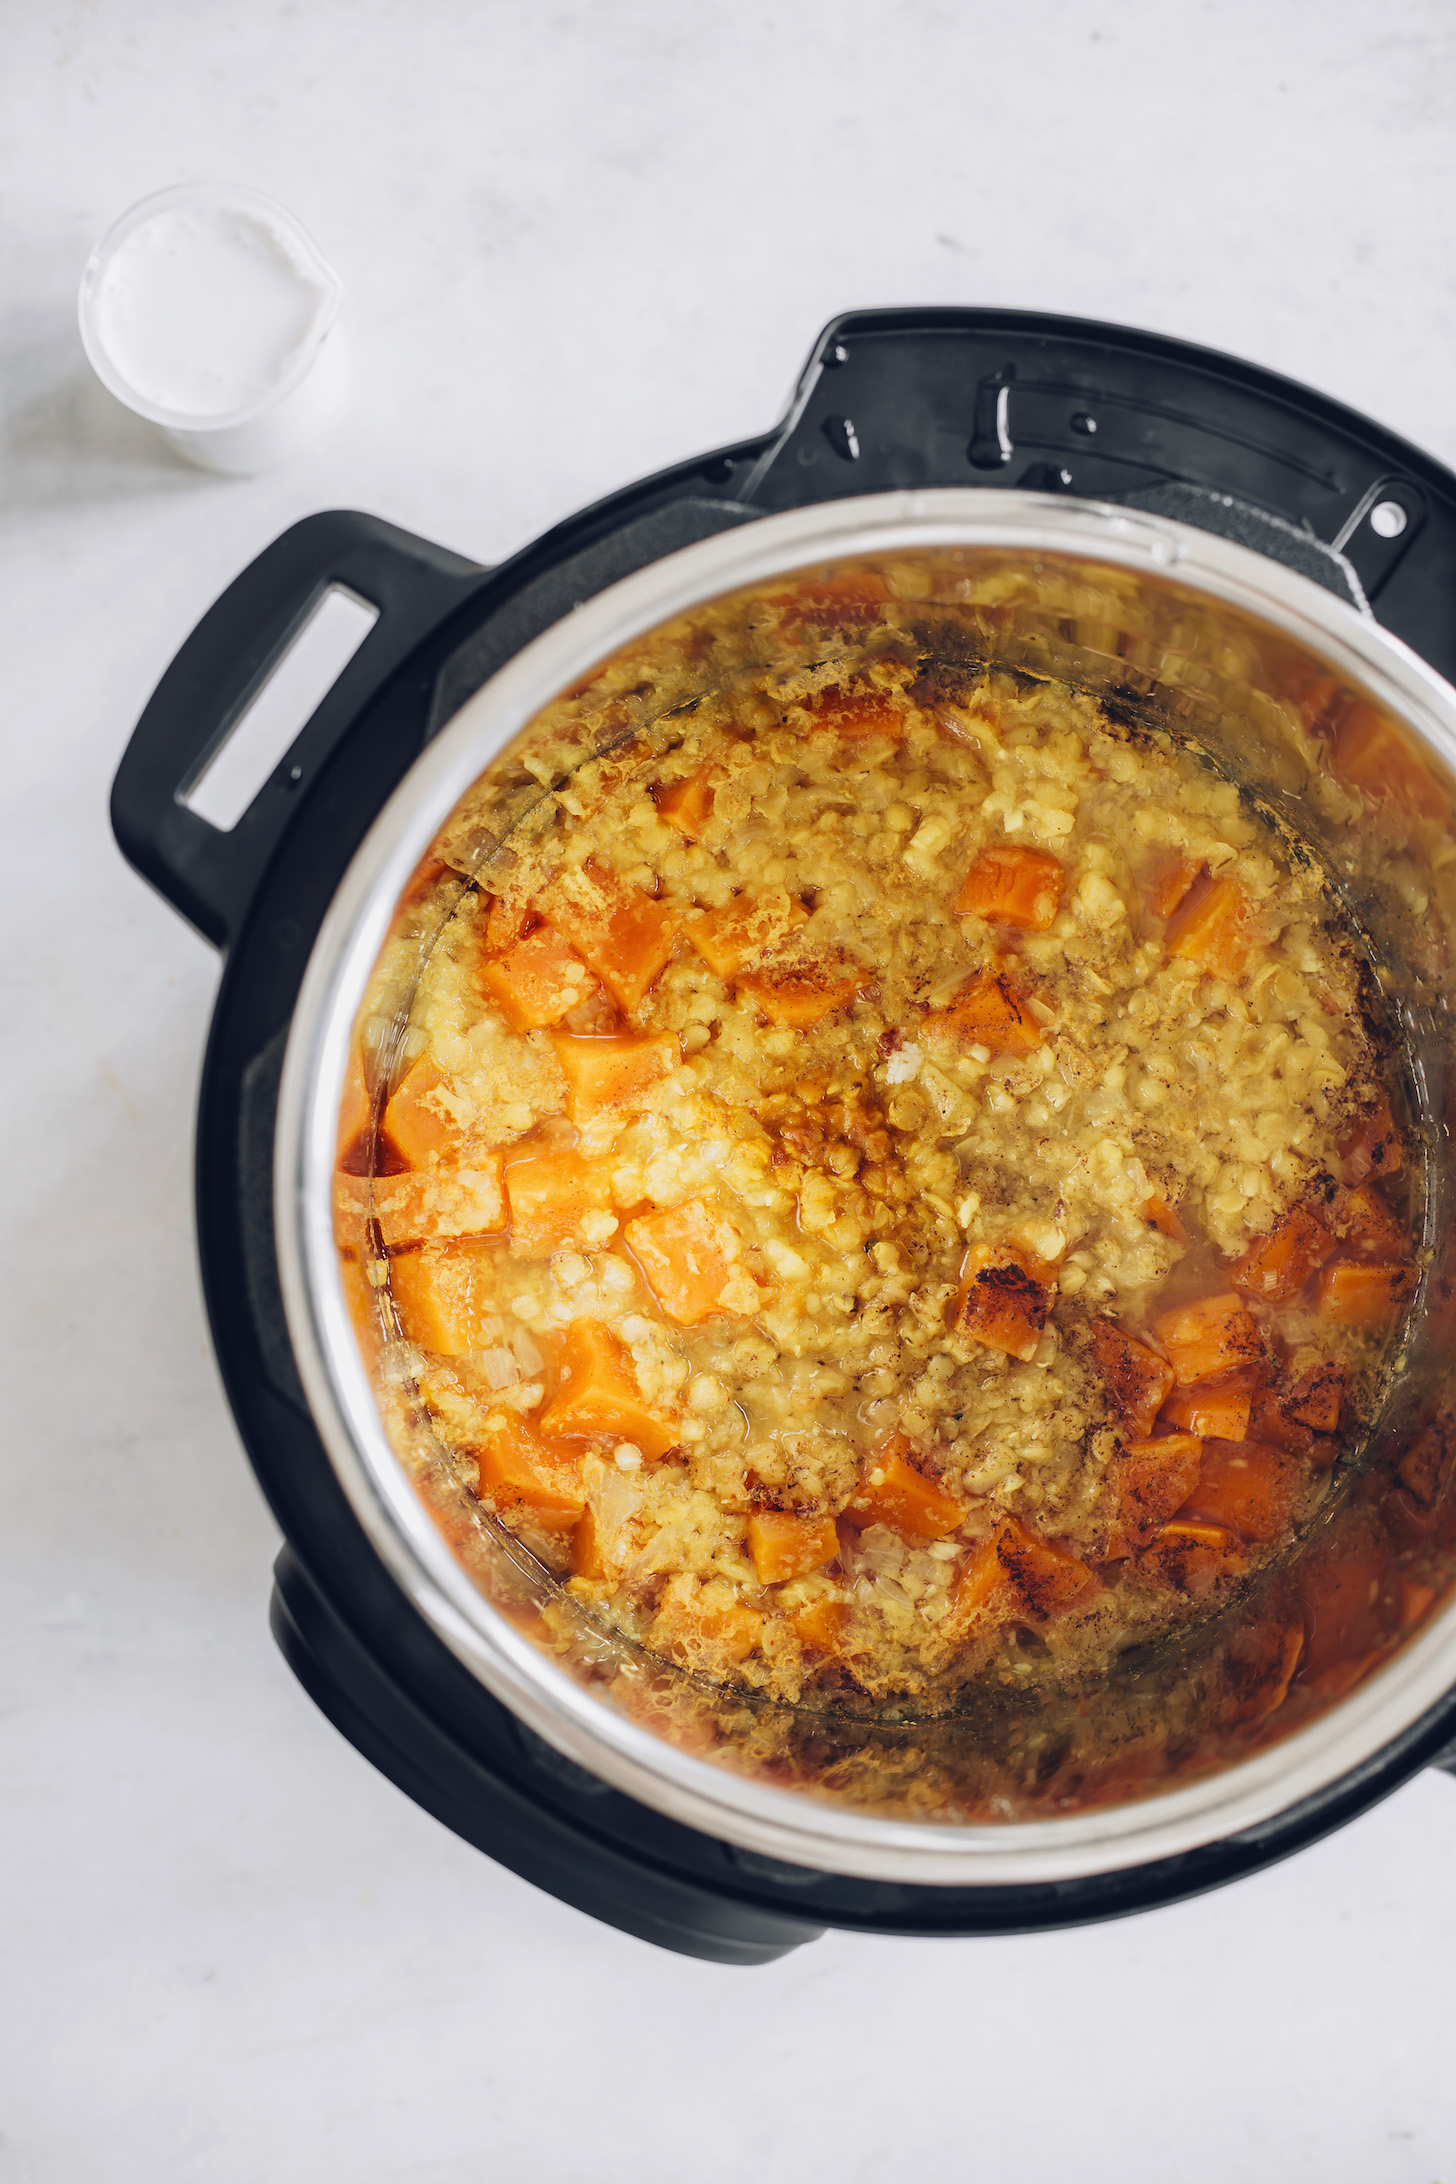 Cooked red lentils, sweet potato, and spices in an Instant Pot